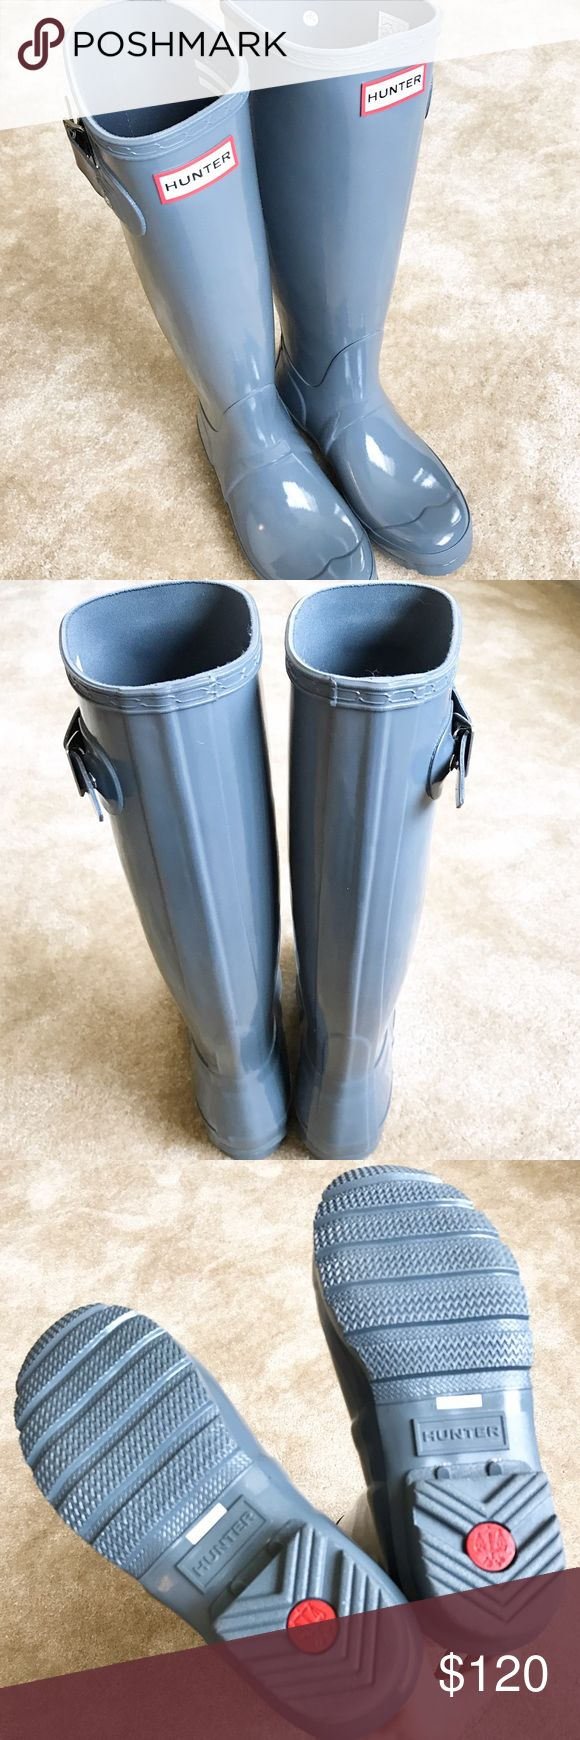 "NWT Hunter Tall Rain Boots NWT Hunter Original tall gloss rain boots. Size 36/US 5; however, Hunter rain boots run big, so they actually fit like a 6. Small mark on right boot buckle, but not really noticeable. Color is ""graphite."" [Excluded from bundle discount] Hunter Shoes"